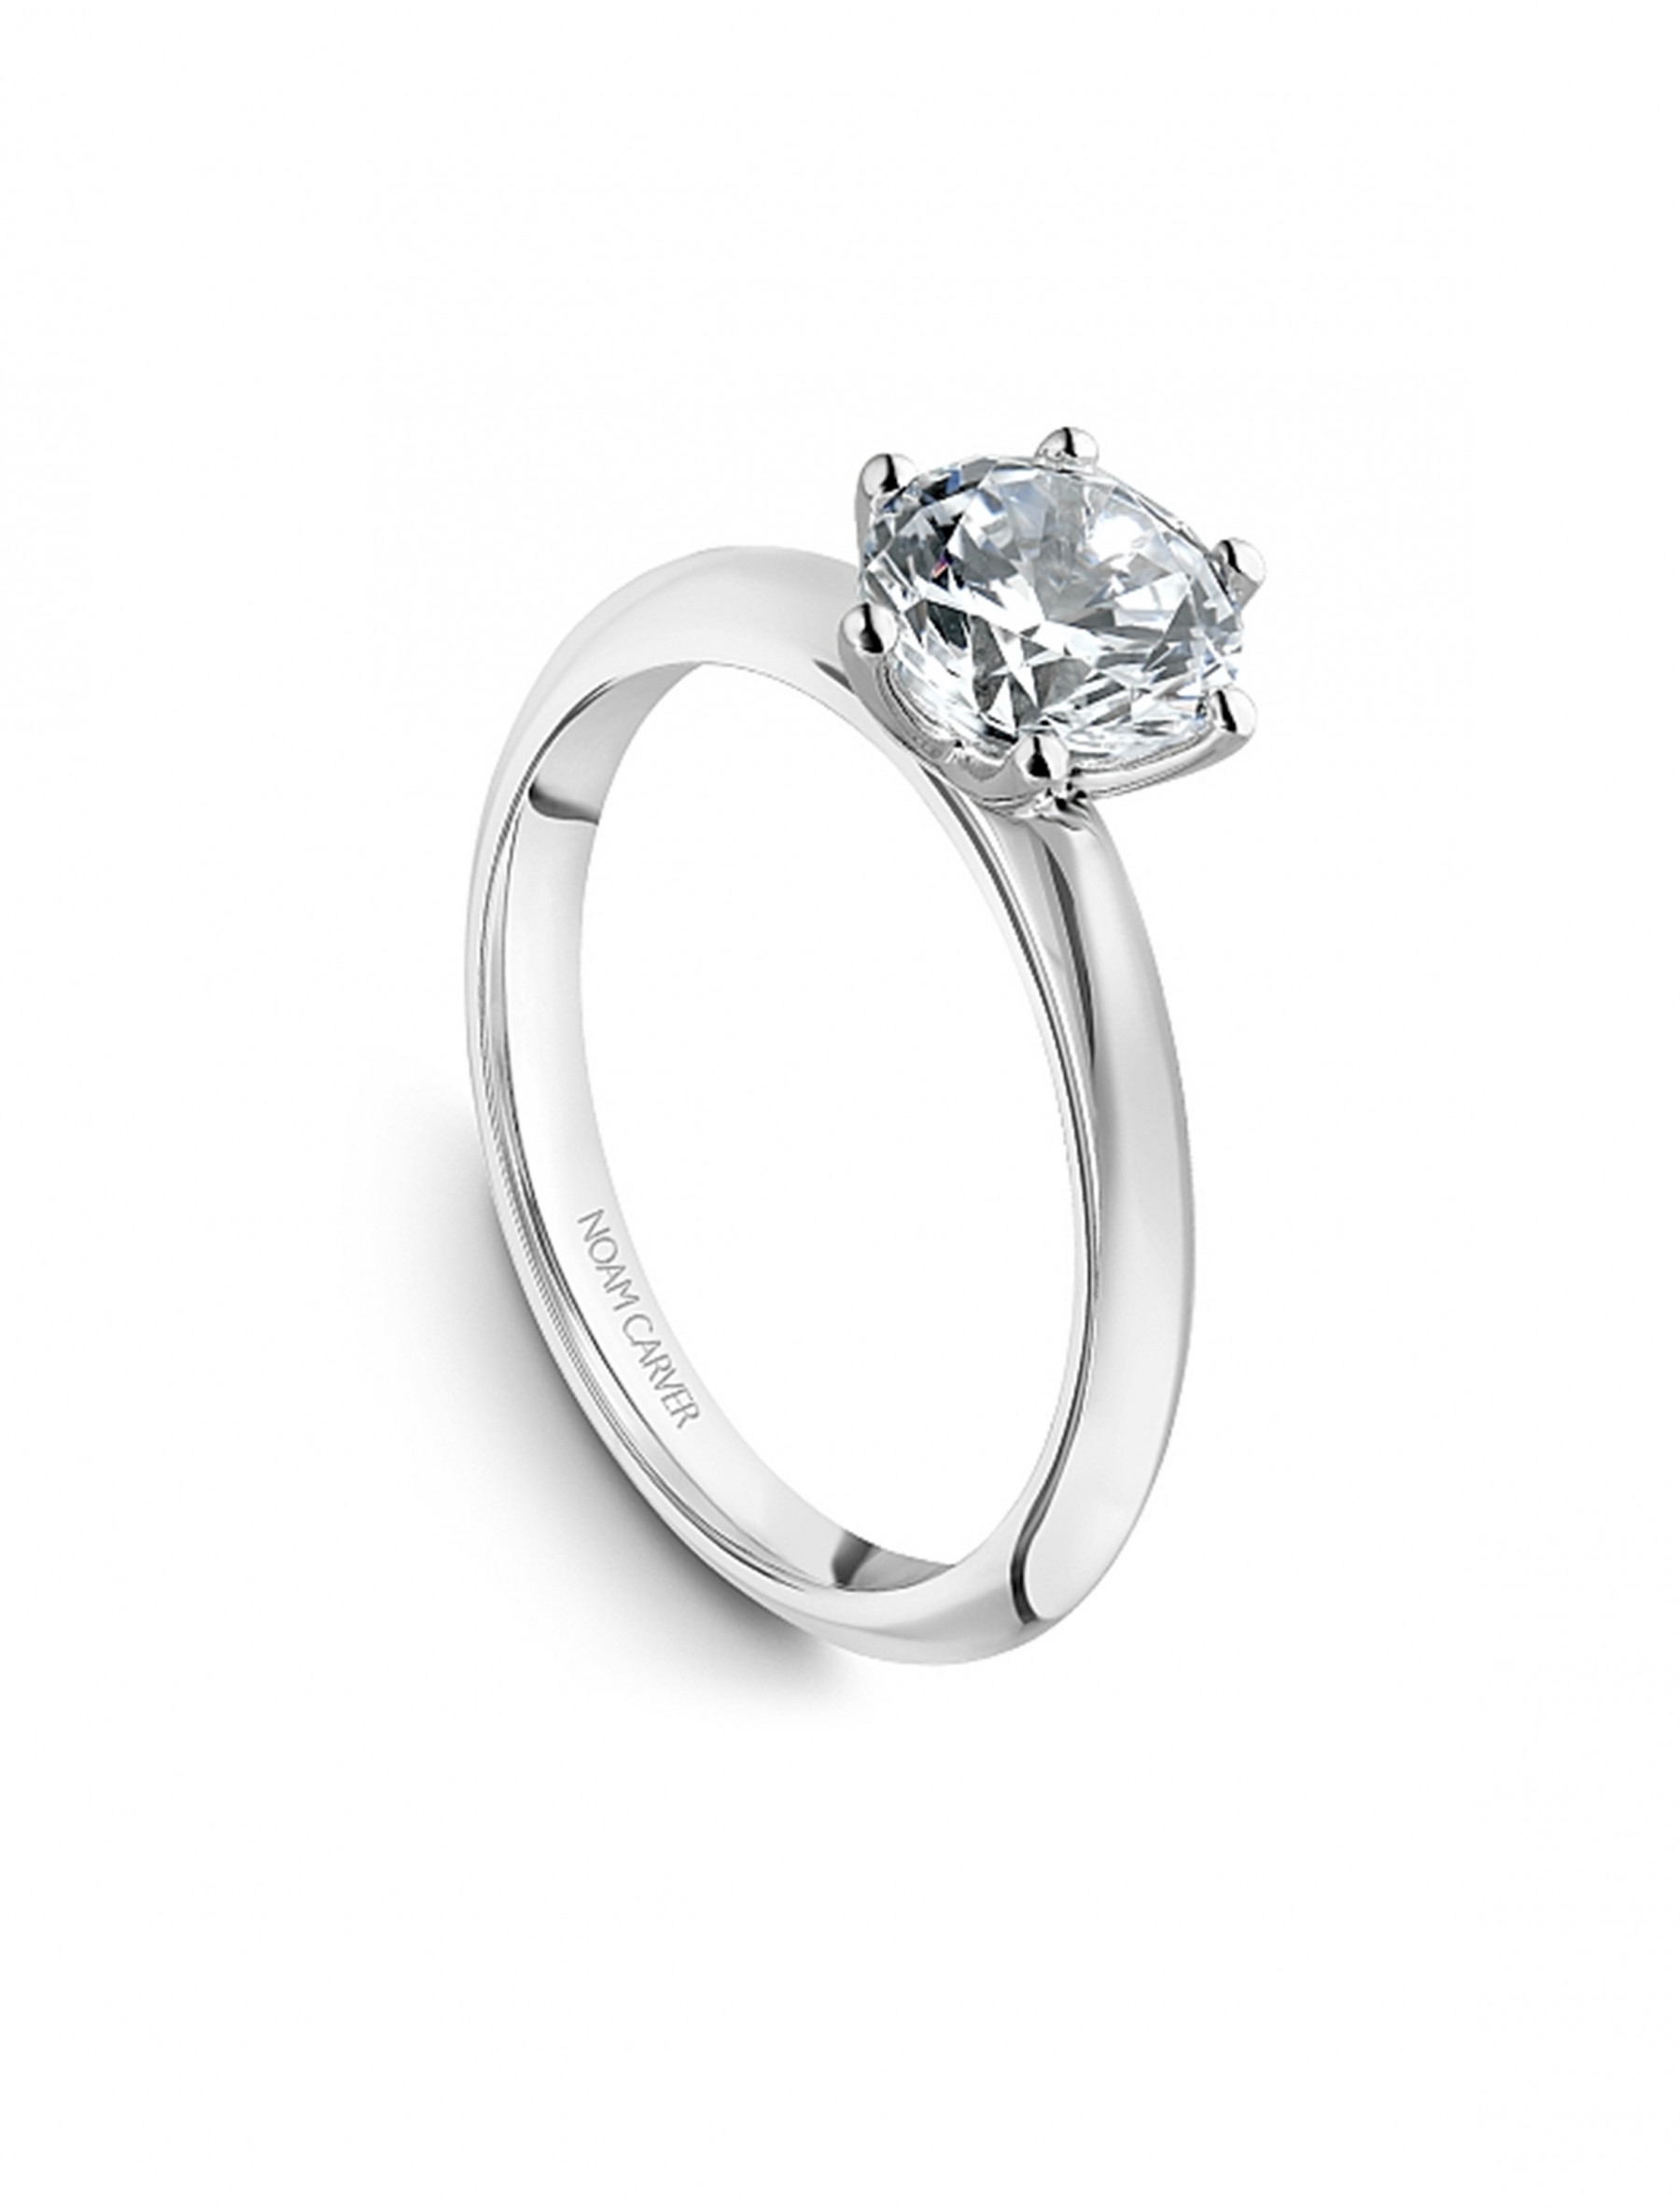 Noam Carver Round Solitaire Knife Edge Engagement Ring Setting in Platinum top angle view